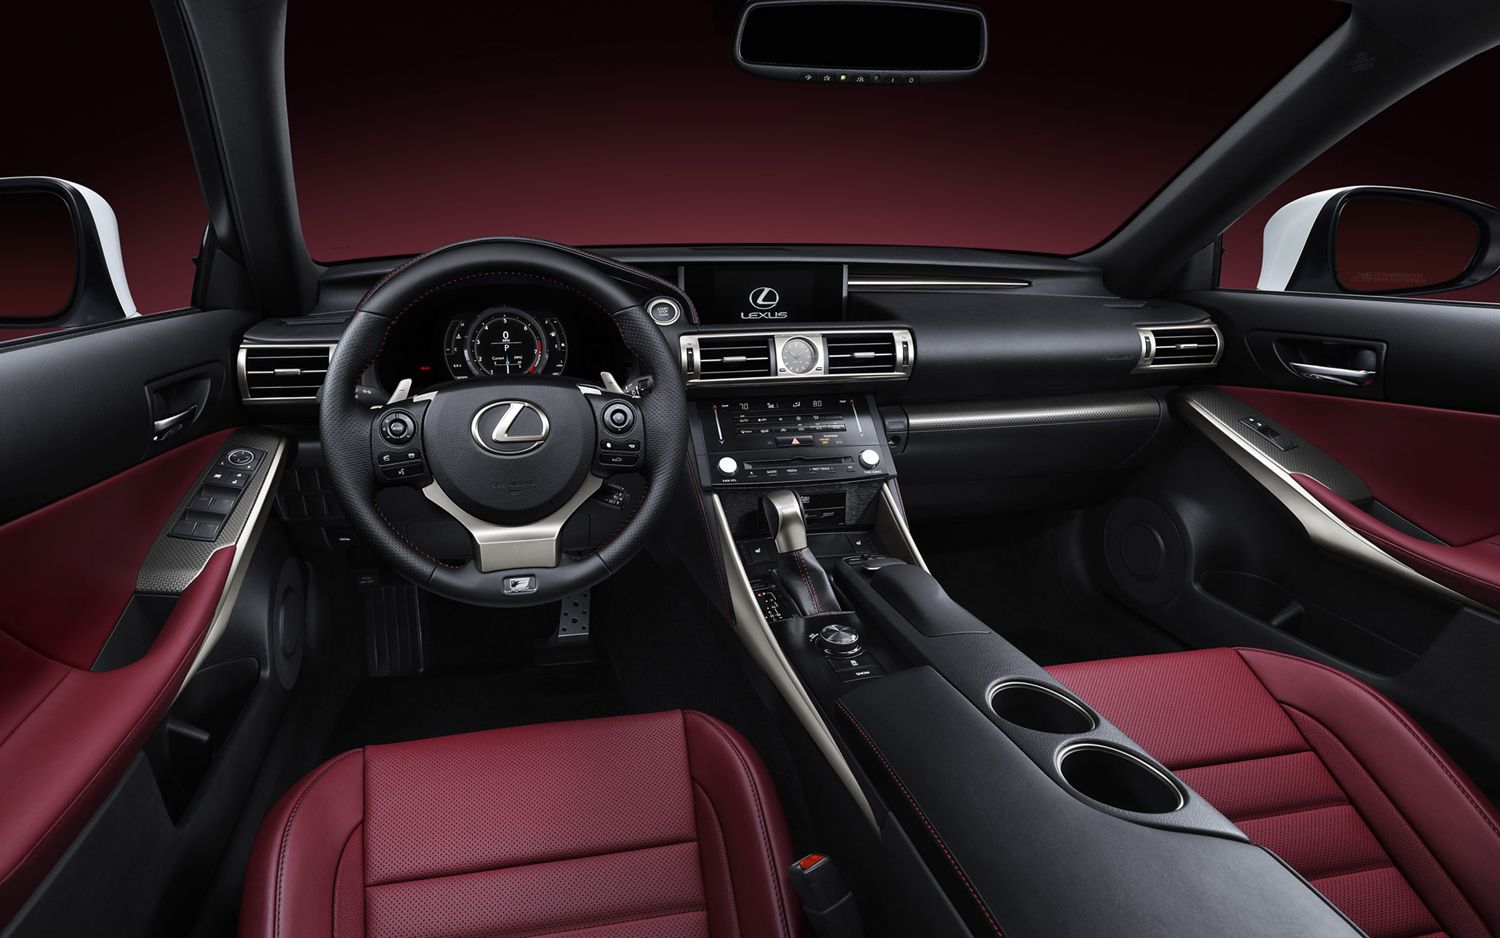 sport for sale photos news new f tv by reviewed lexus video autoevolution gazoo is